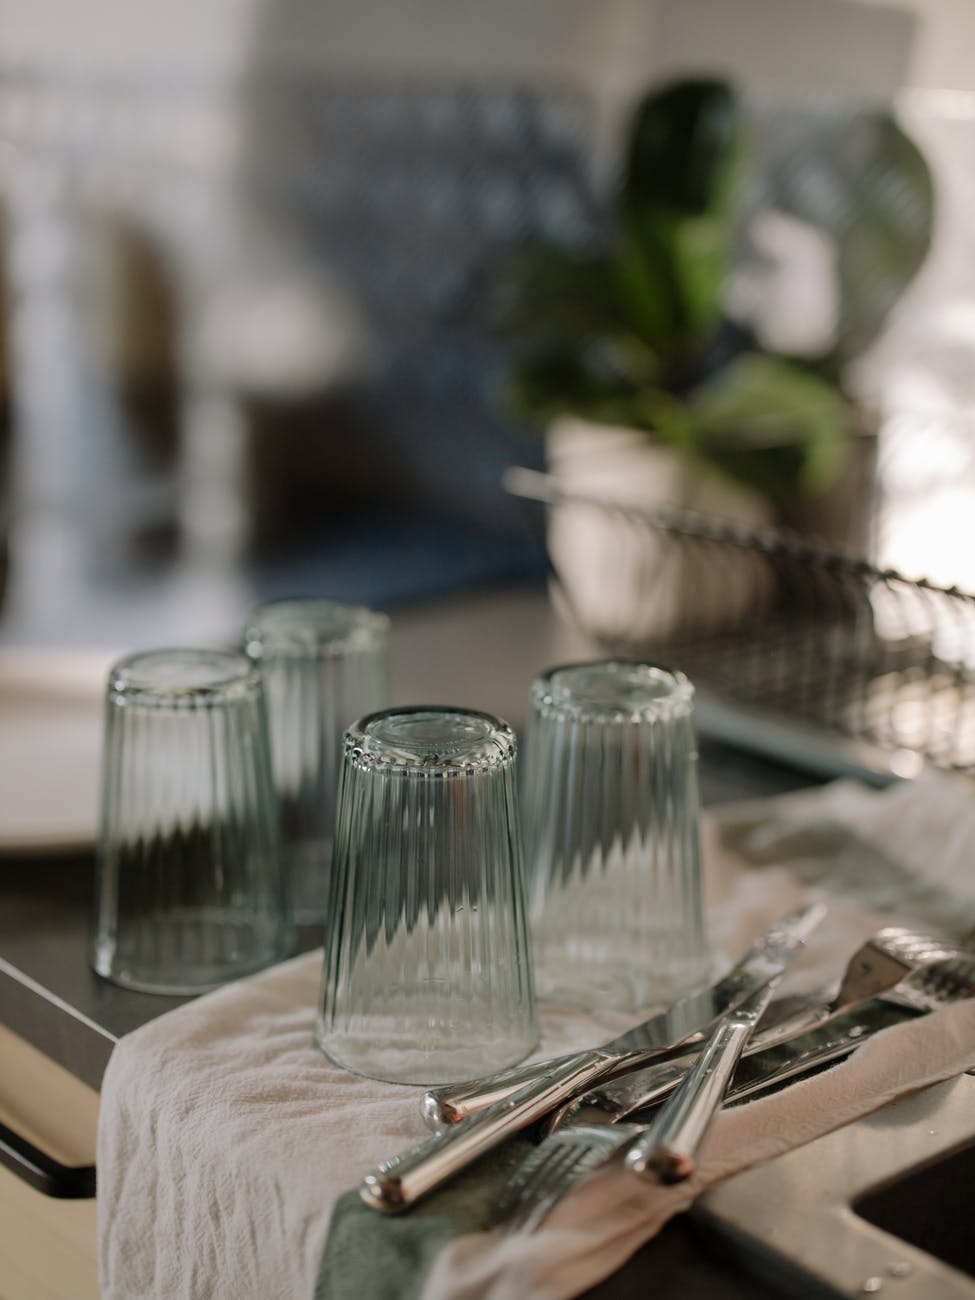 clear glass condiment shakers on brown wooden table